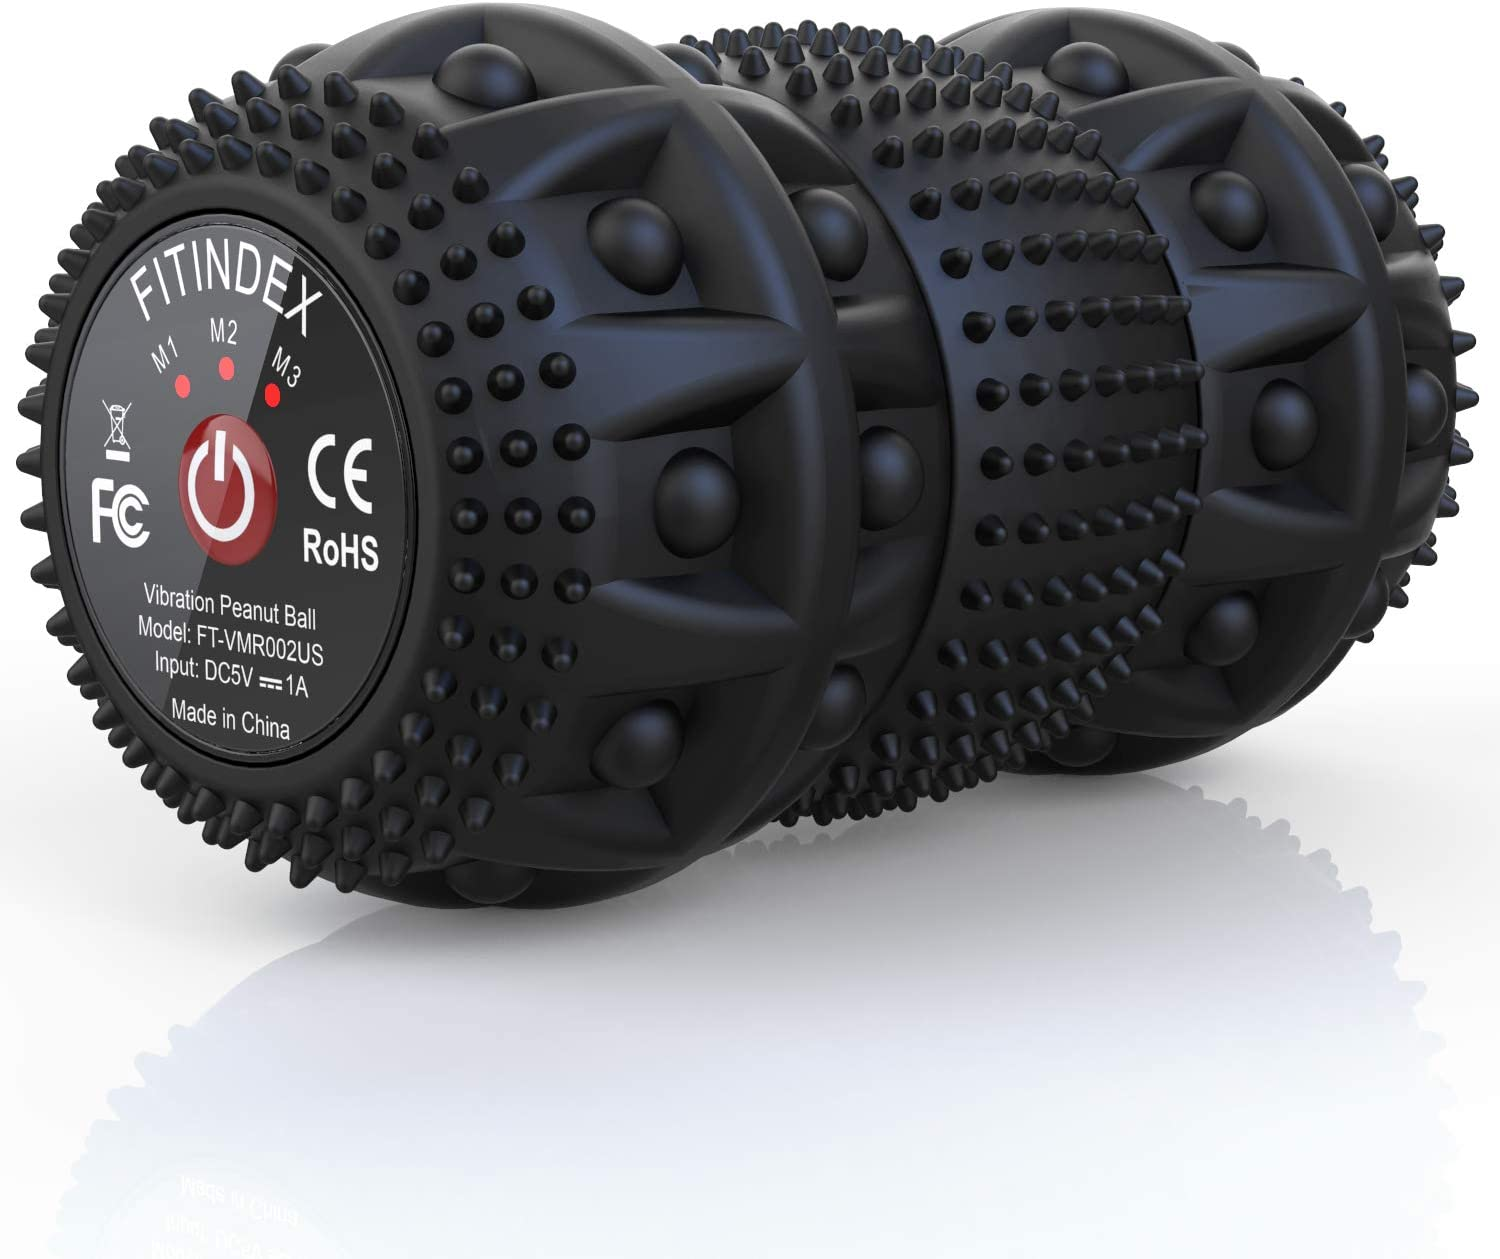 FITINDEX Electric Massage Ball, Vibrating Massage Ball 4-Speed Intensity for Deep Tissue Massage Therapy, Fitness Yoga Massage Roller Ball Rechargeable for Pain Relief Muscle Recovery